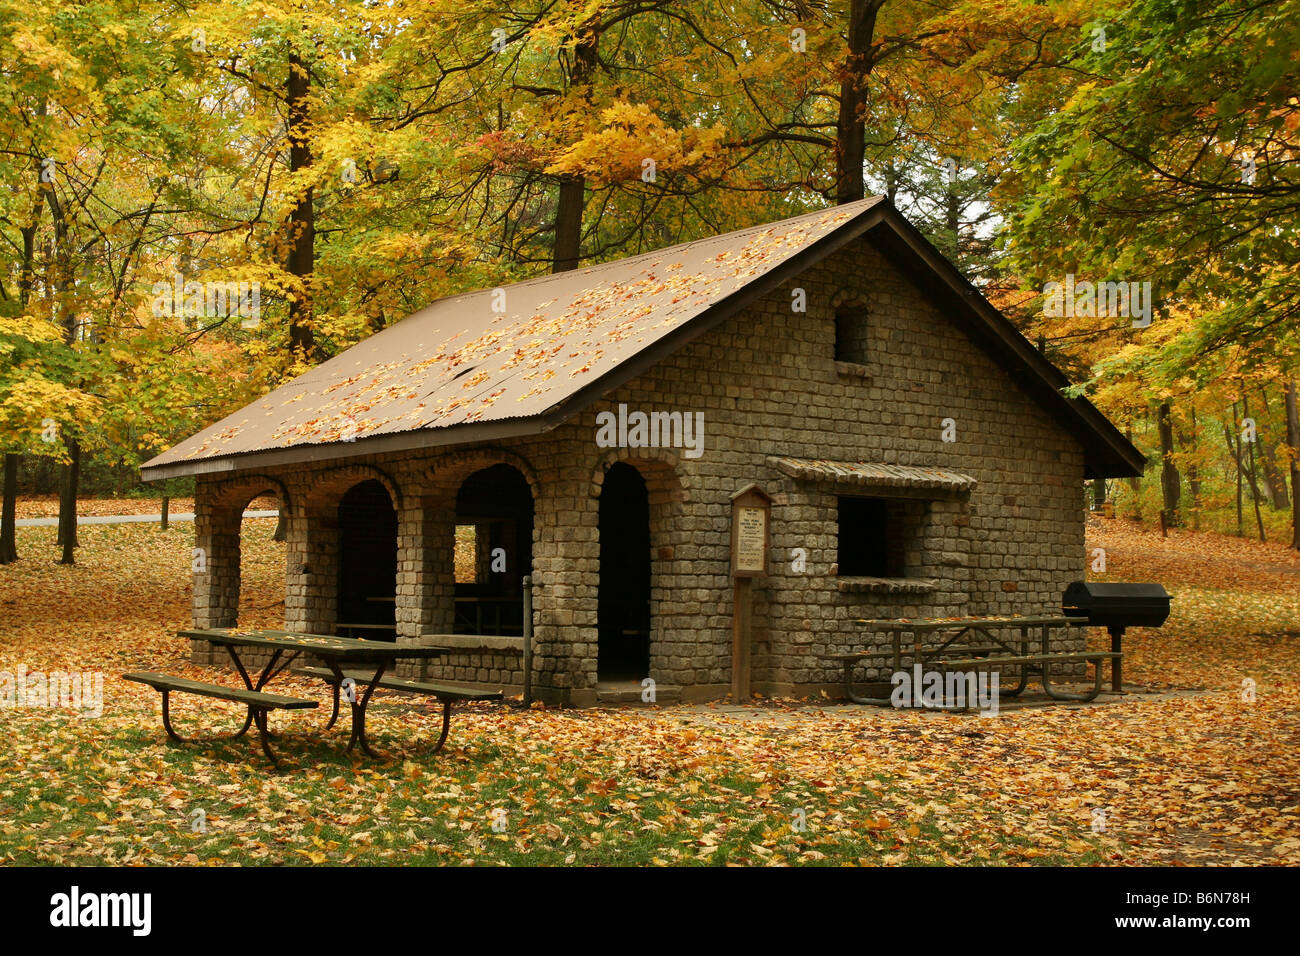 Dayton Metropark Stock Photos & Dayton Metropark Stock Images - Alamy